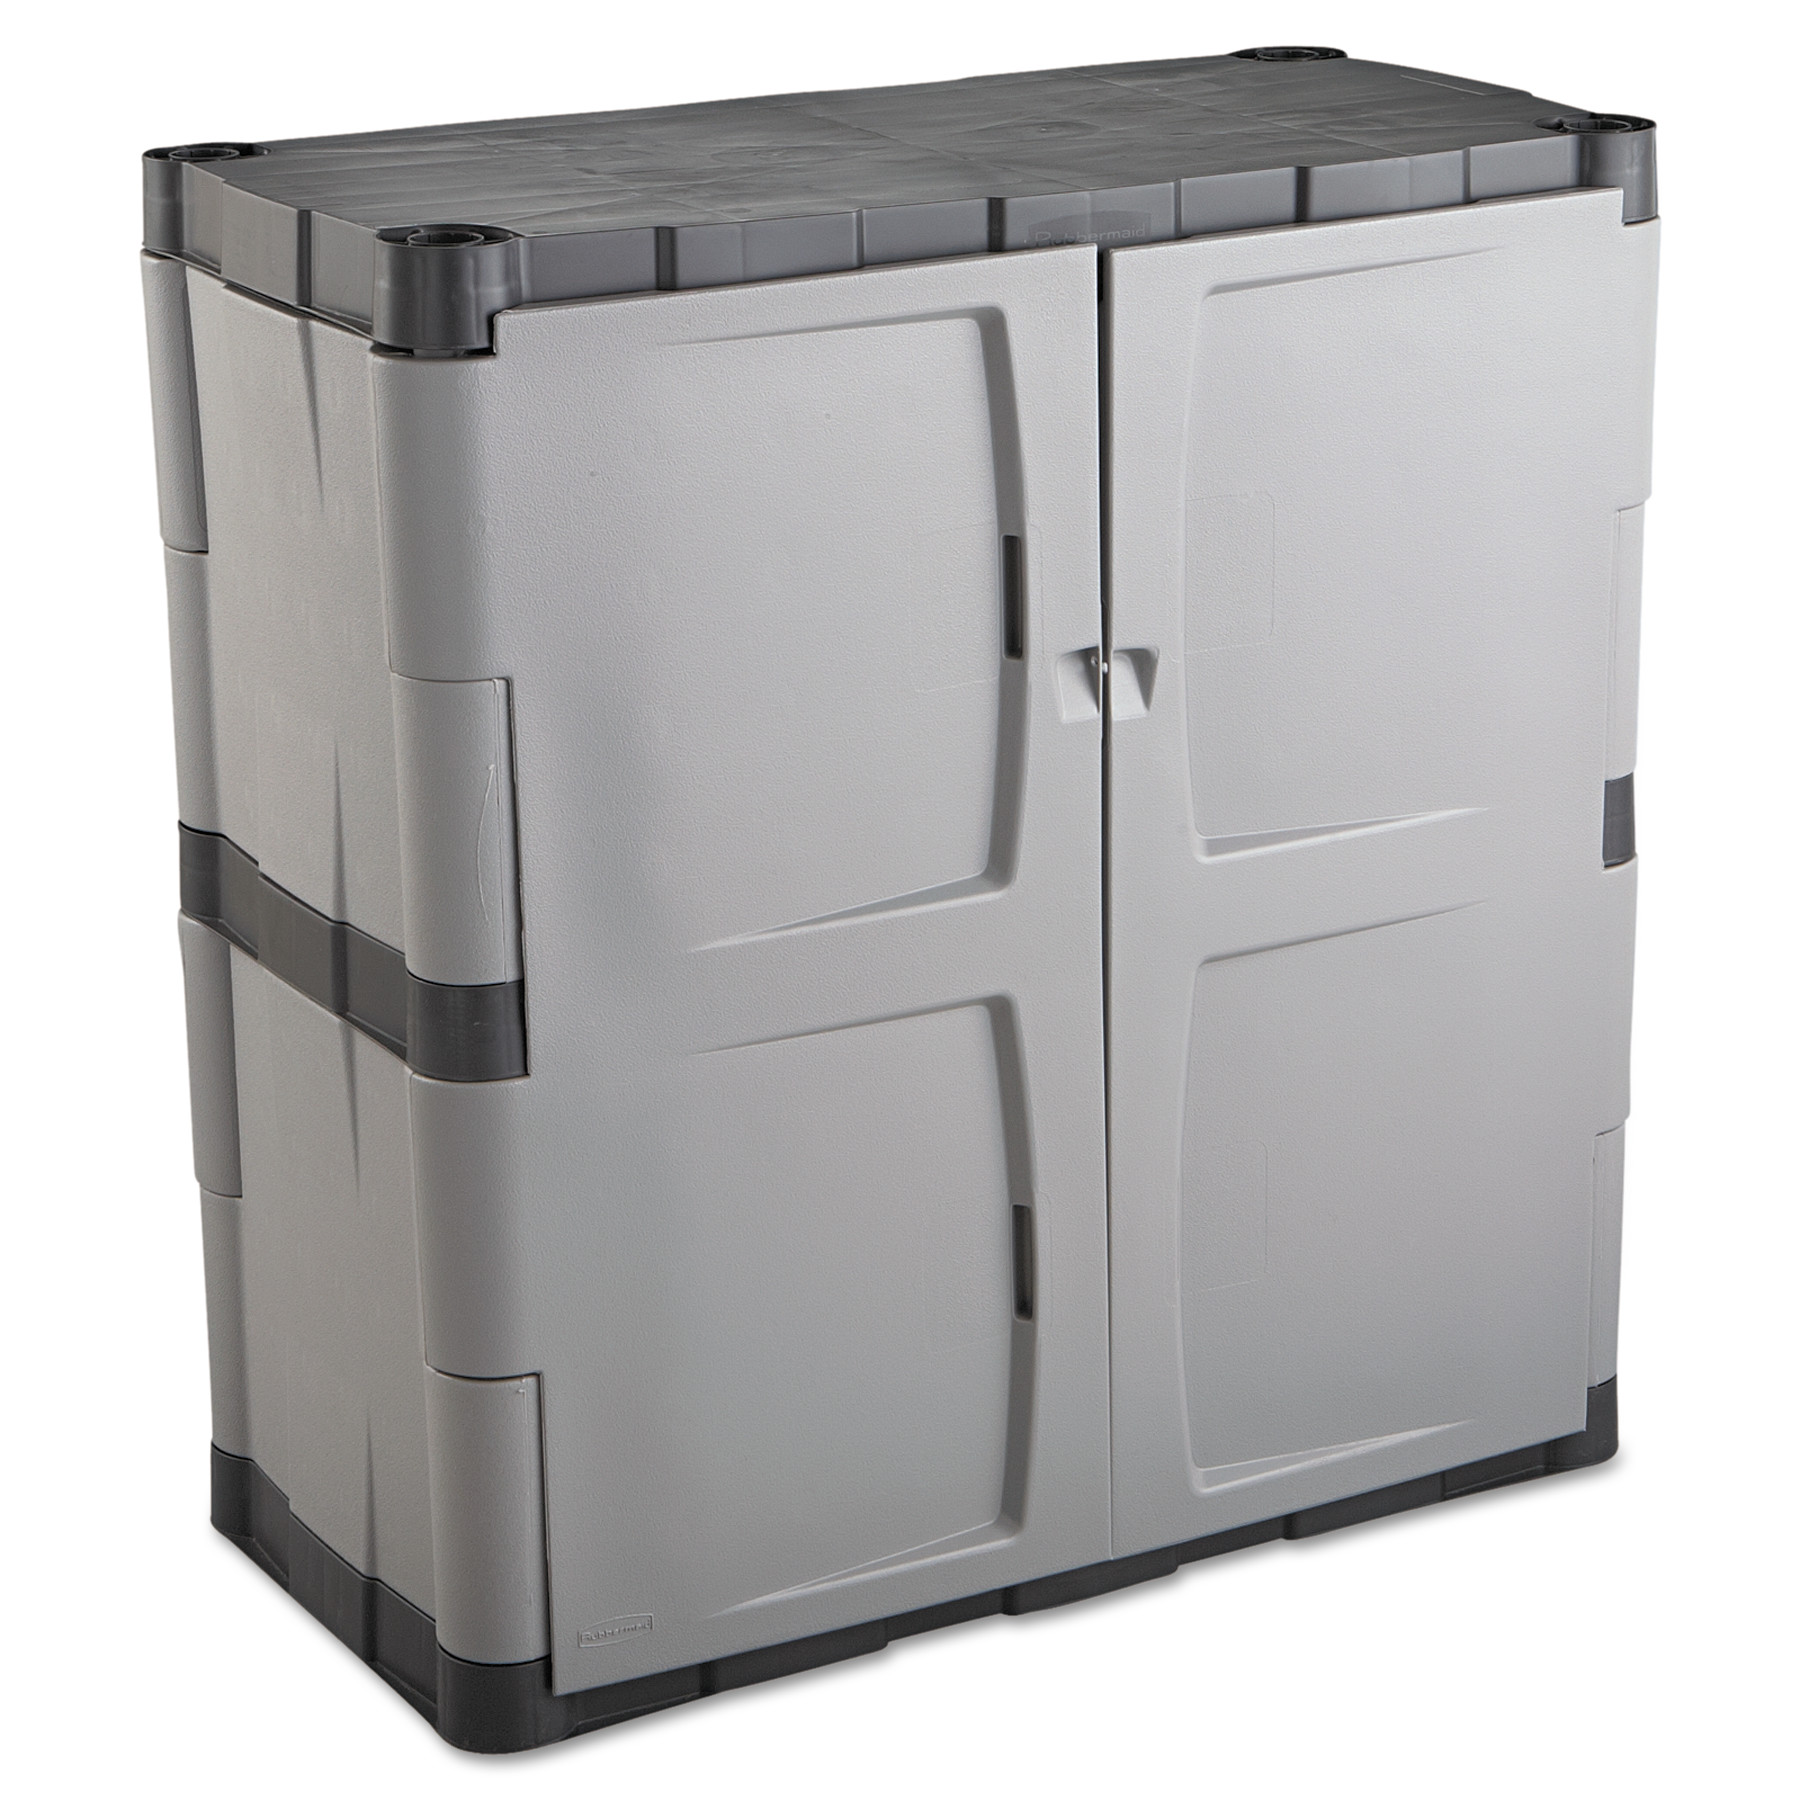 rubbermaid doubledoor storage cabinet base 36w x 18d x 36h gray